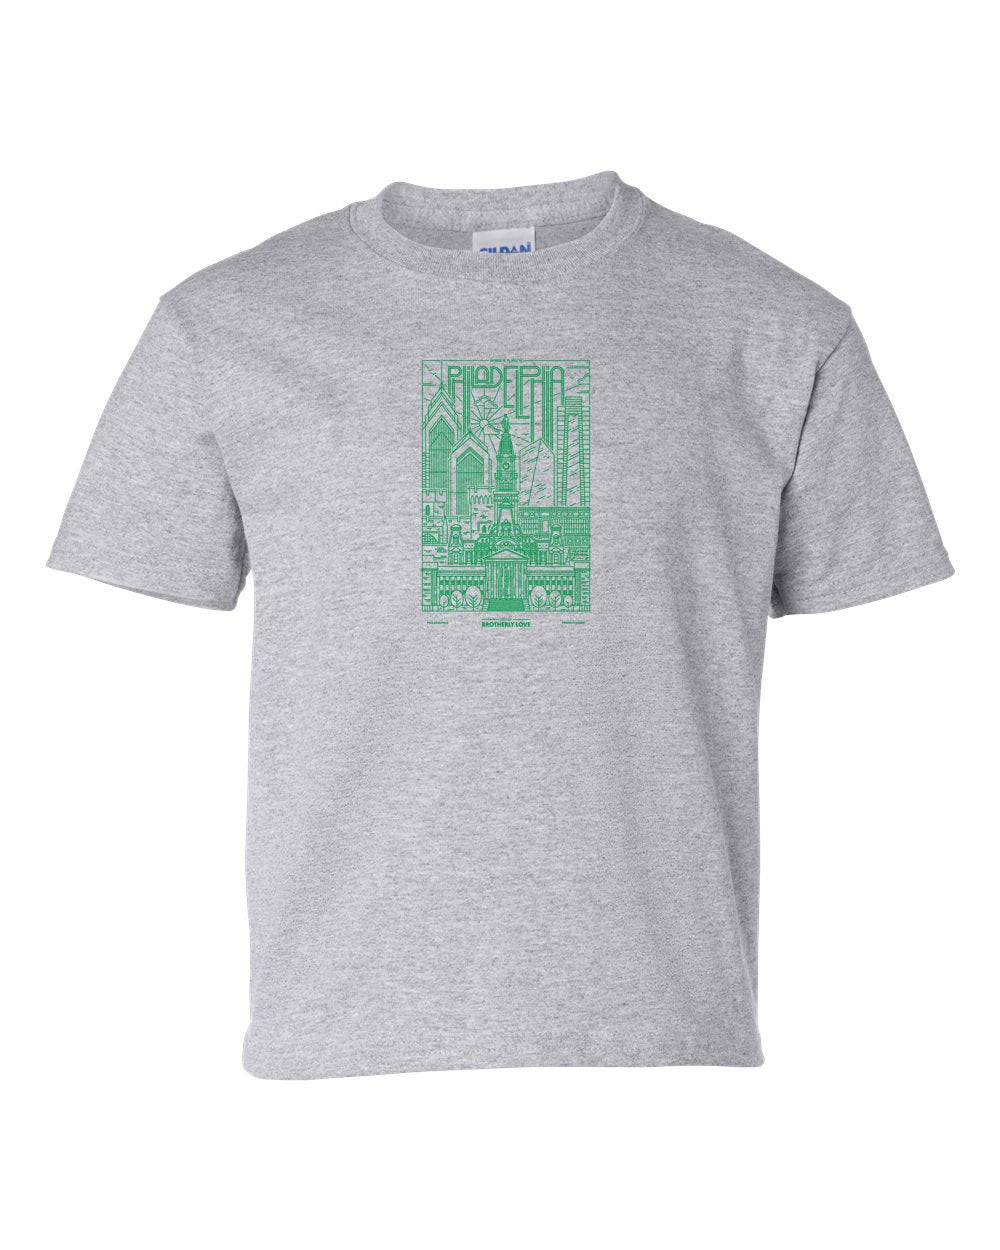 Philadelphia Skyline V2 (Green Ink) KIDS T-Shirt